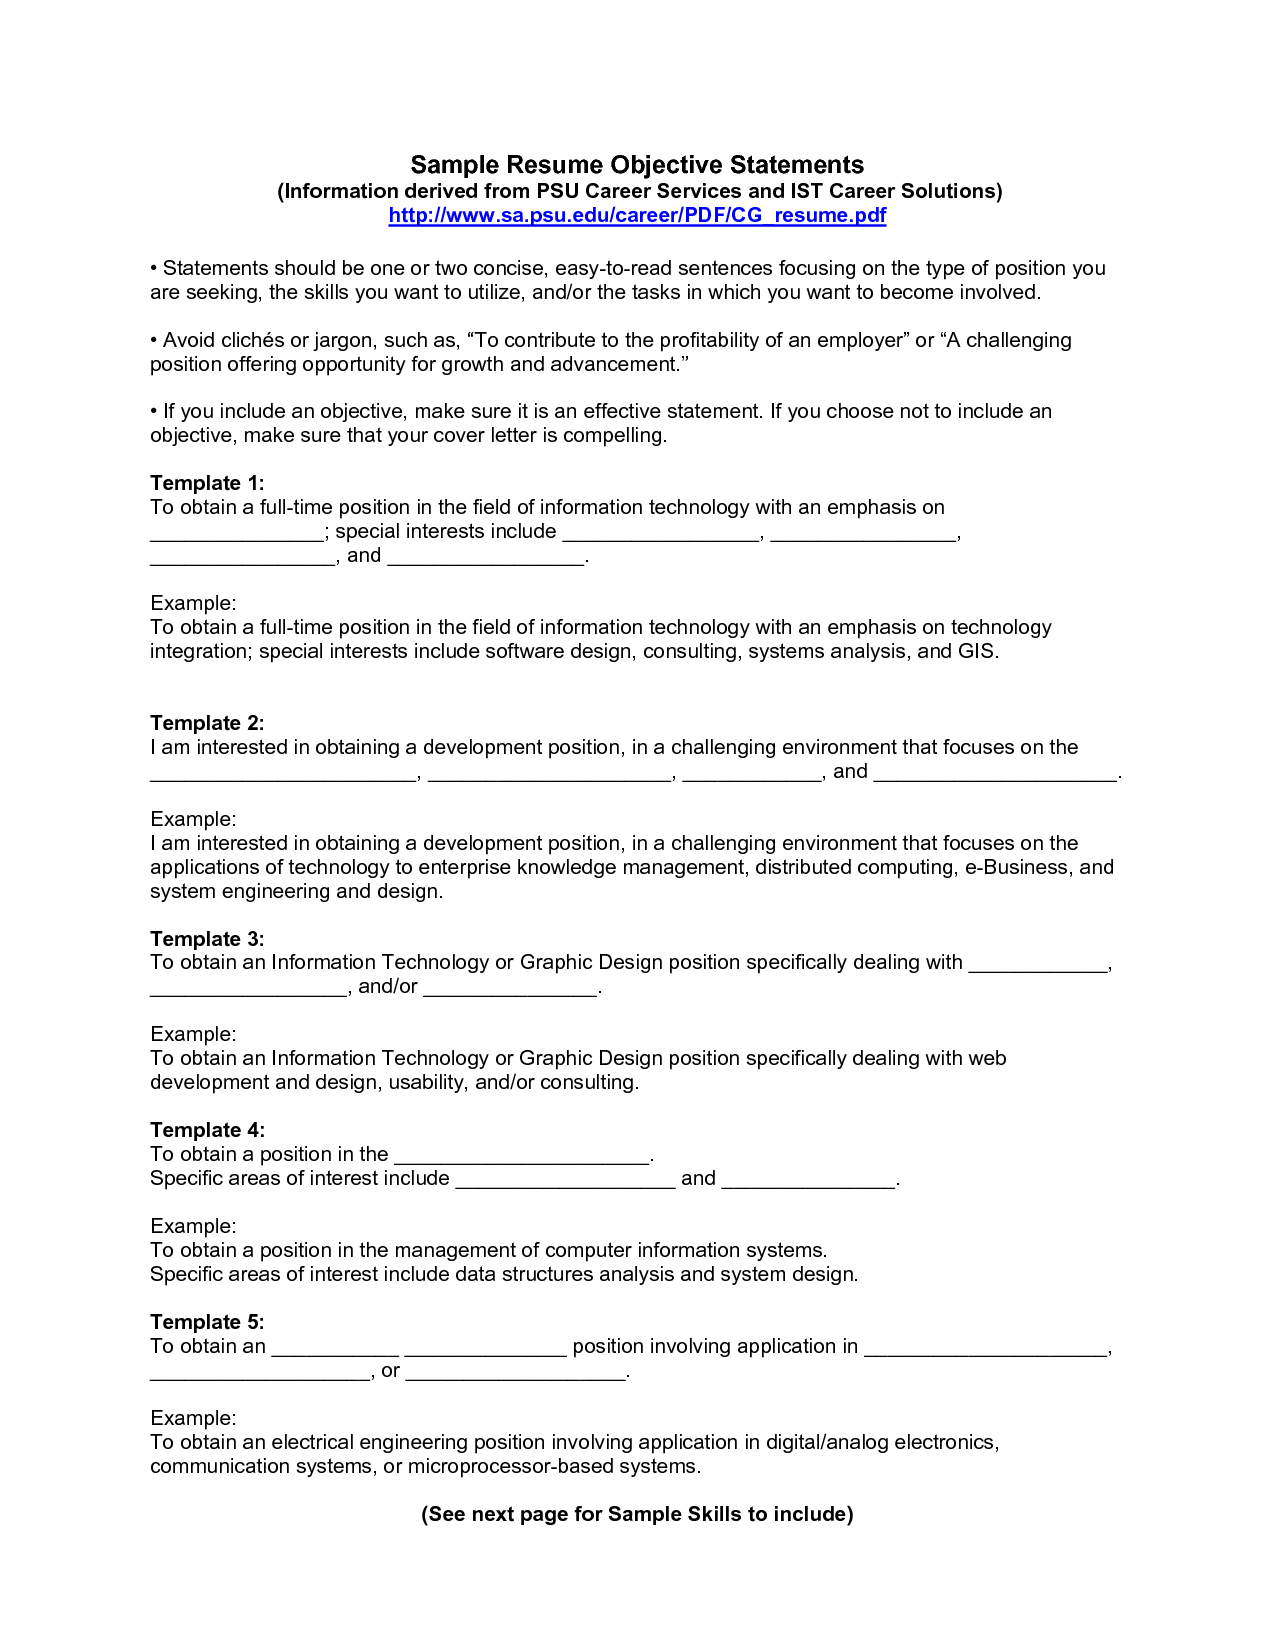 100 examples of good resume job objective statements template